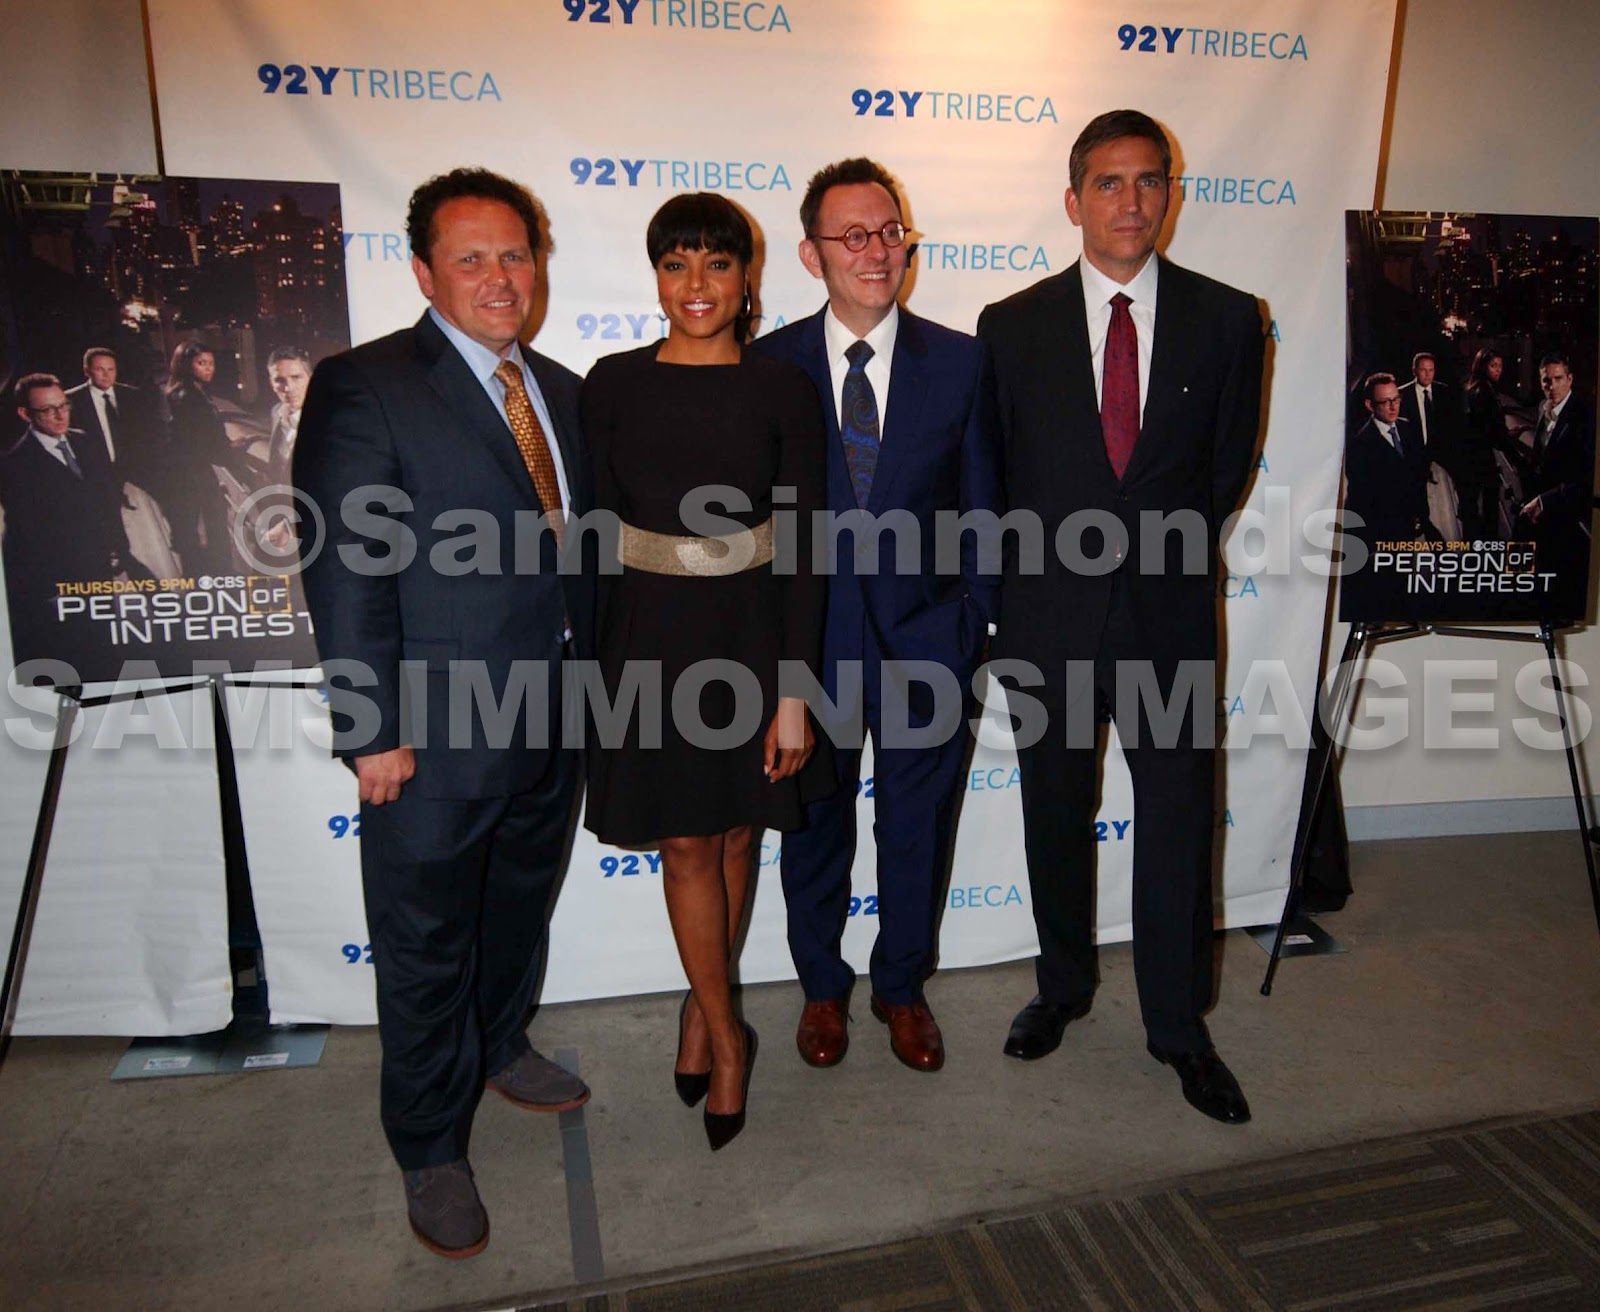 CBS's Person Of Interest Season Premiere Preview Kick-Off With Cast